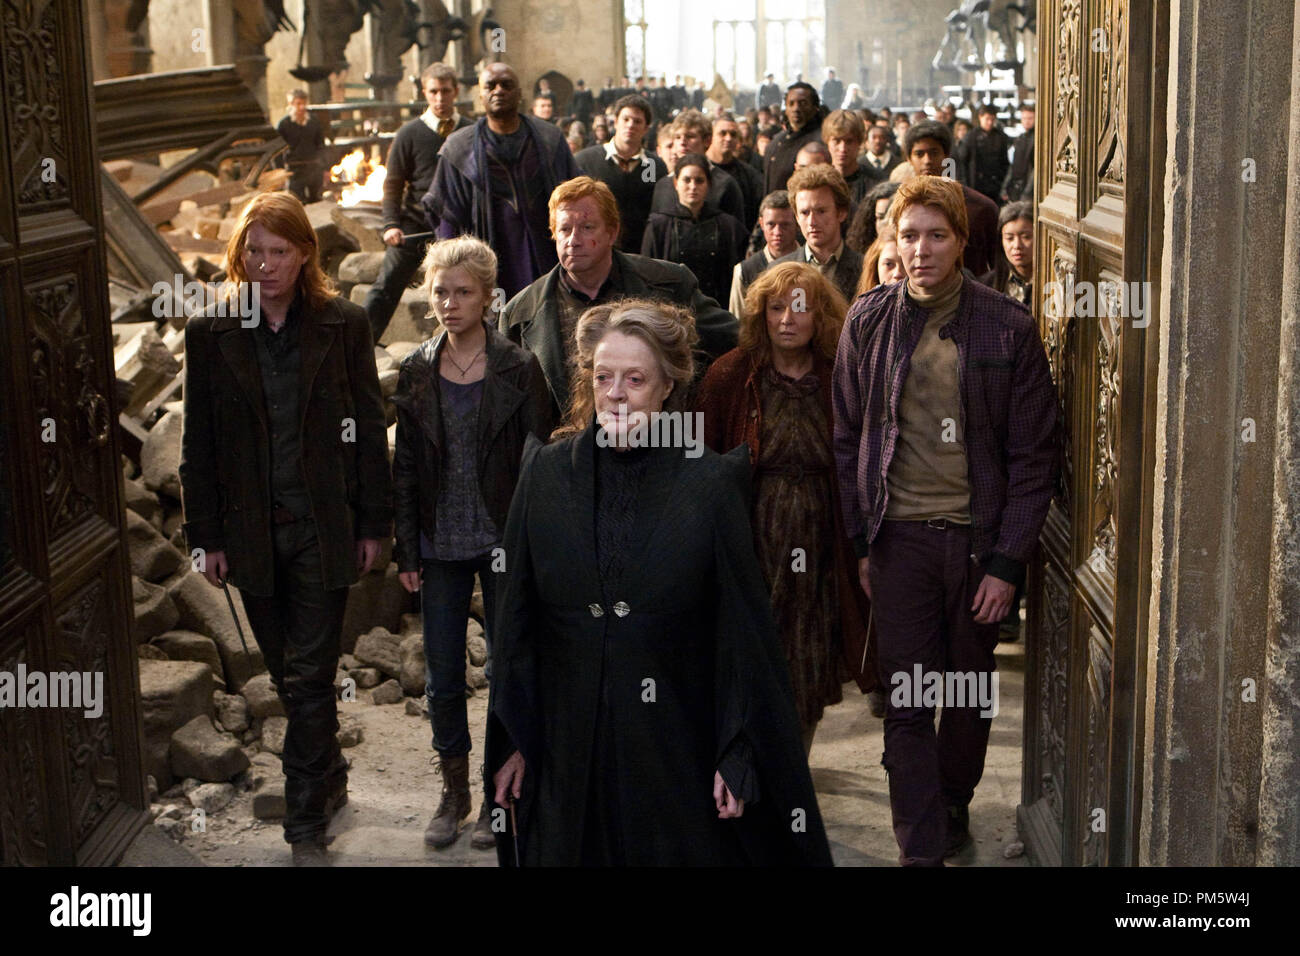 "(L-r) DOMHNALL GLEESON as Bill Weasley, CLÉMENCE POÉSY as Fleur Delacour, MARK WILLIAMS as Arthur Weasley, MAGGIE SMITH as Professor Minerva McGonagall, JULIE WALTERS as Molly Weasley and OLIVER PHELPS as George Weasley in Warner Bros. Pictures' fantasy adventure ""HARRY POTTER AND THE DEATHLY HALLOWS – PART 2,"" a Warner Bros. Pictures release. - Stock Image"